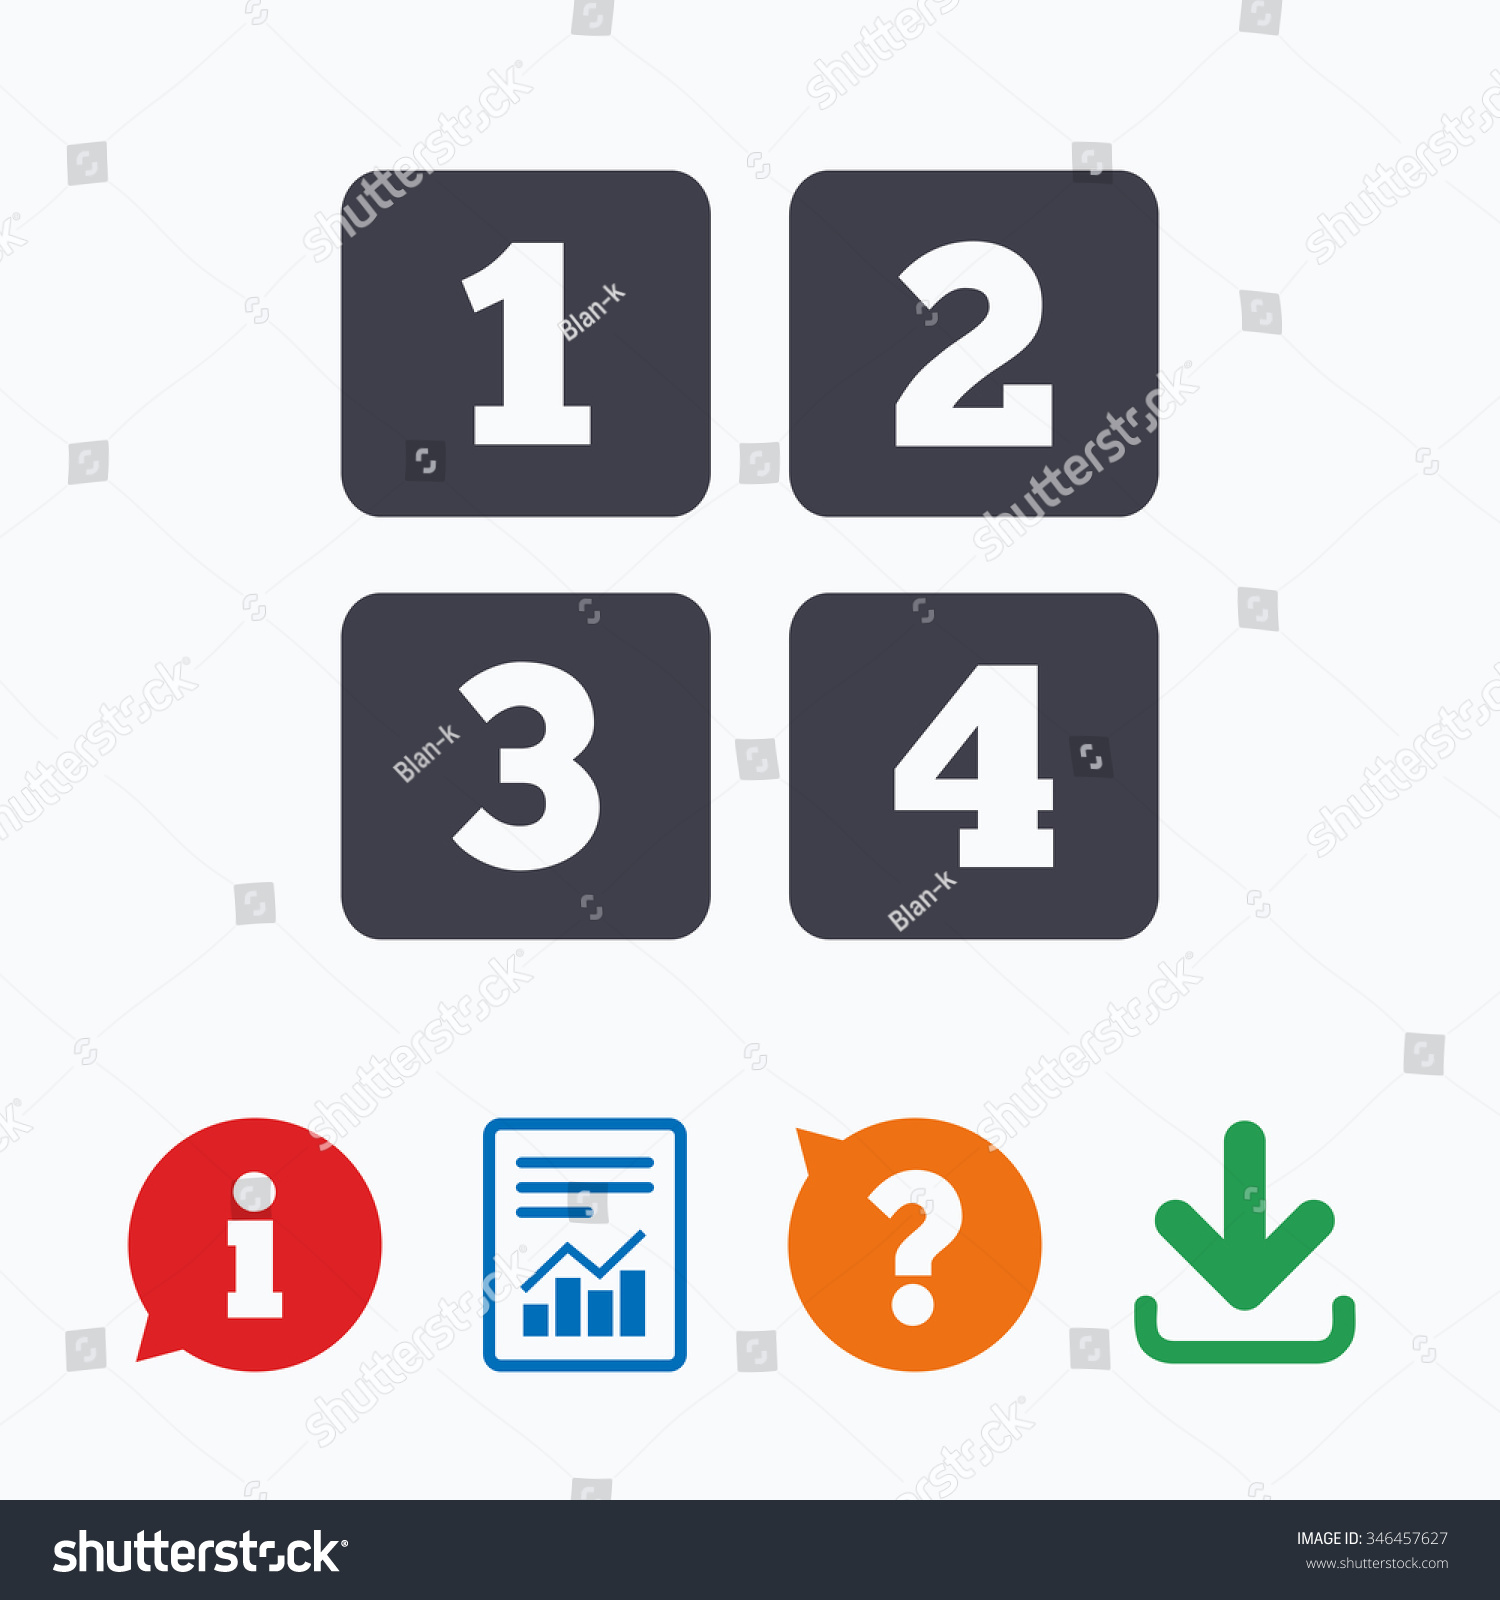 Cellphone keyboard sign icon digits symbol stock illustration cellphone keyboard sign icon digits symbol information think bubble question mark download biocorpaavc Images